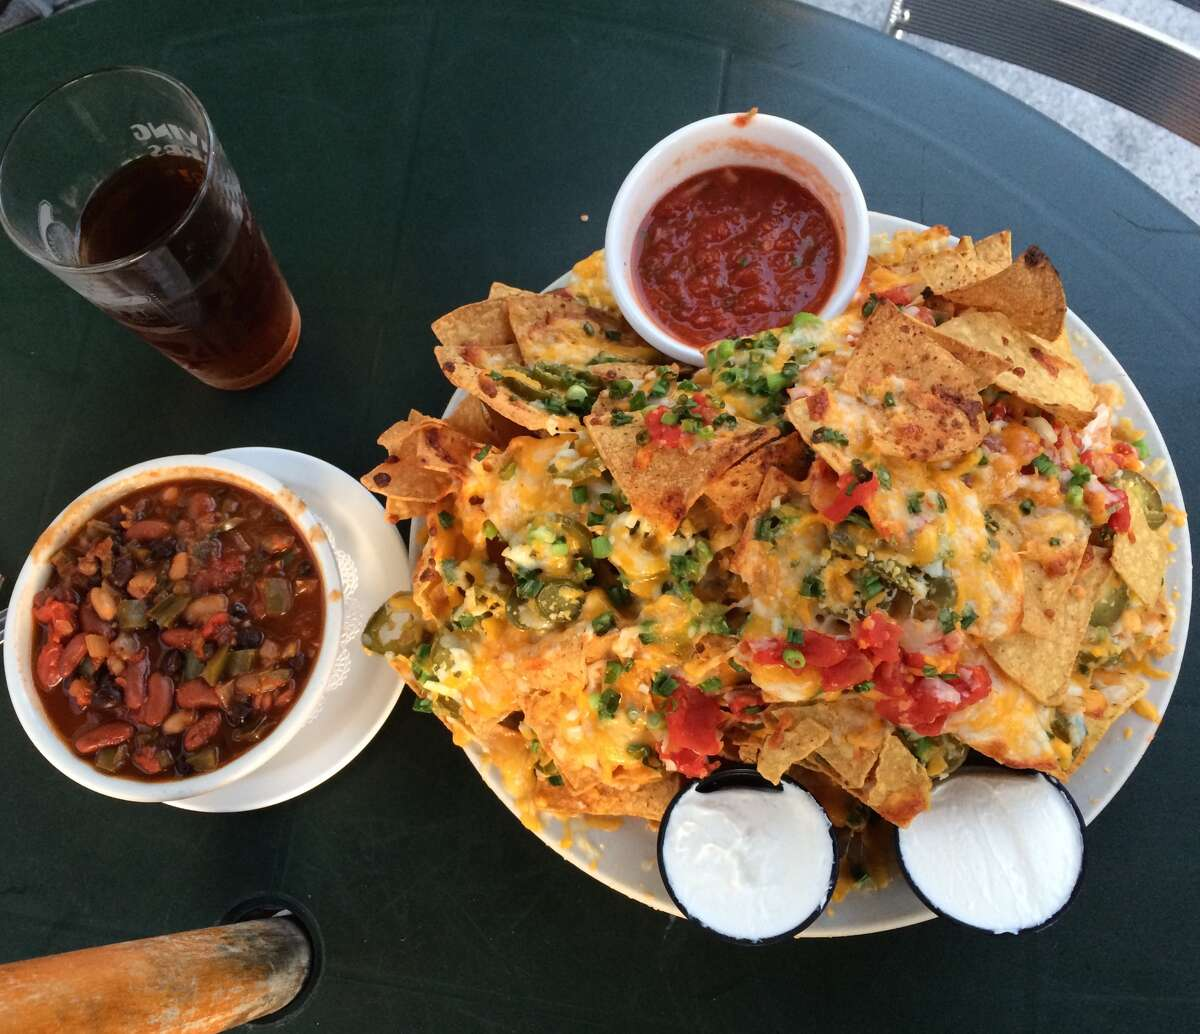 Willimantic Brewing Company in Willimantic, CT was named one of Thrillist's 21 best Nachos in America.967 Main St, Willimantic, CT 06226Website